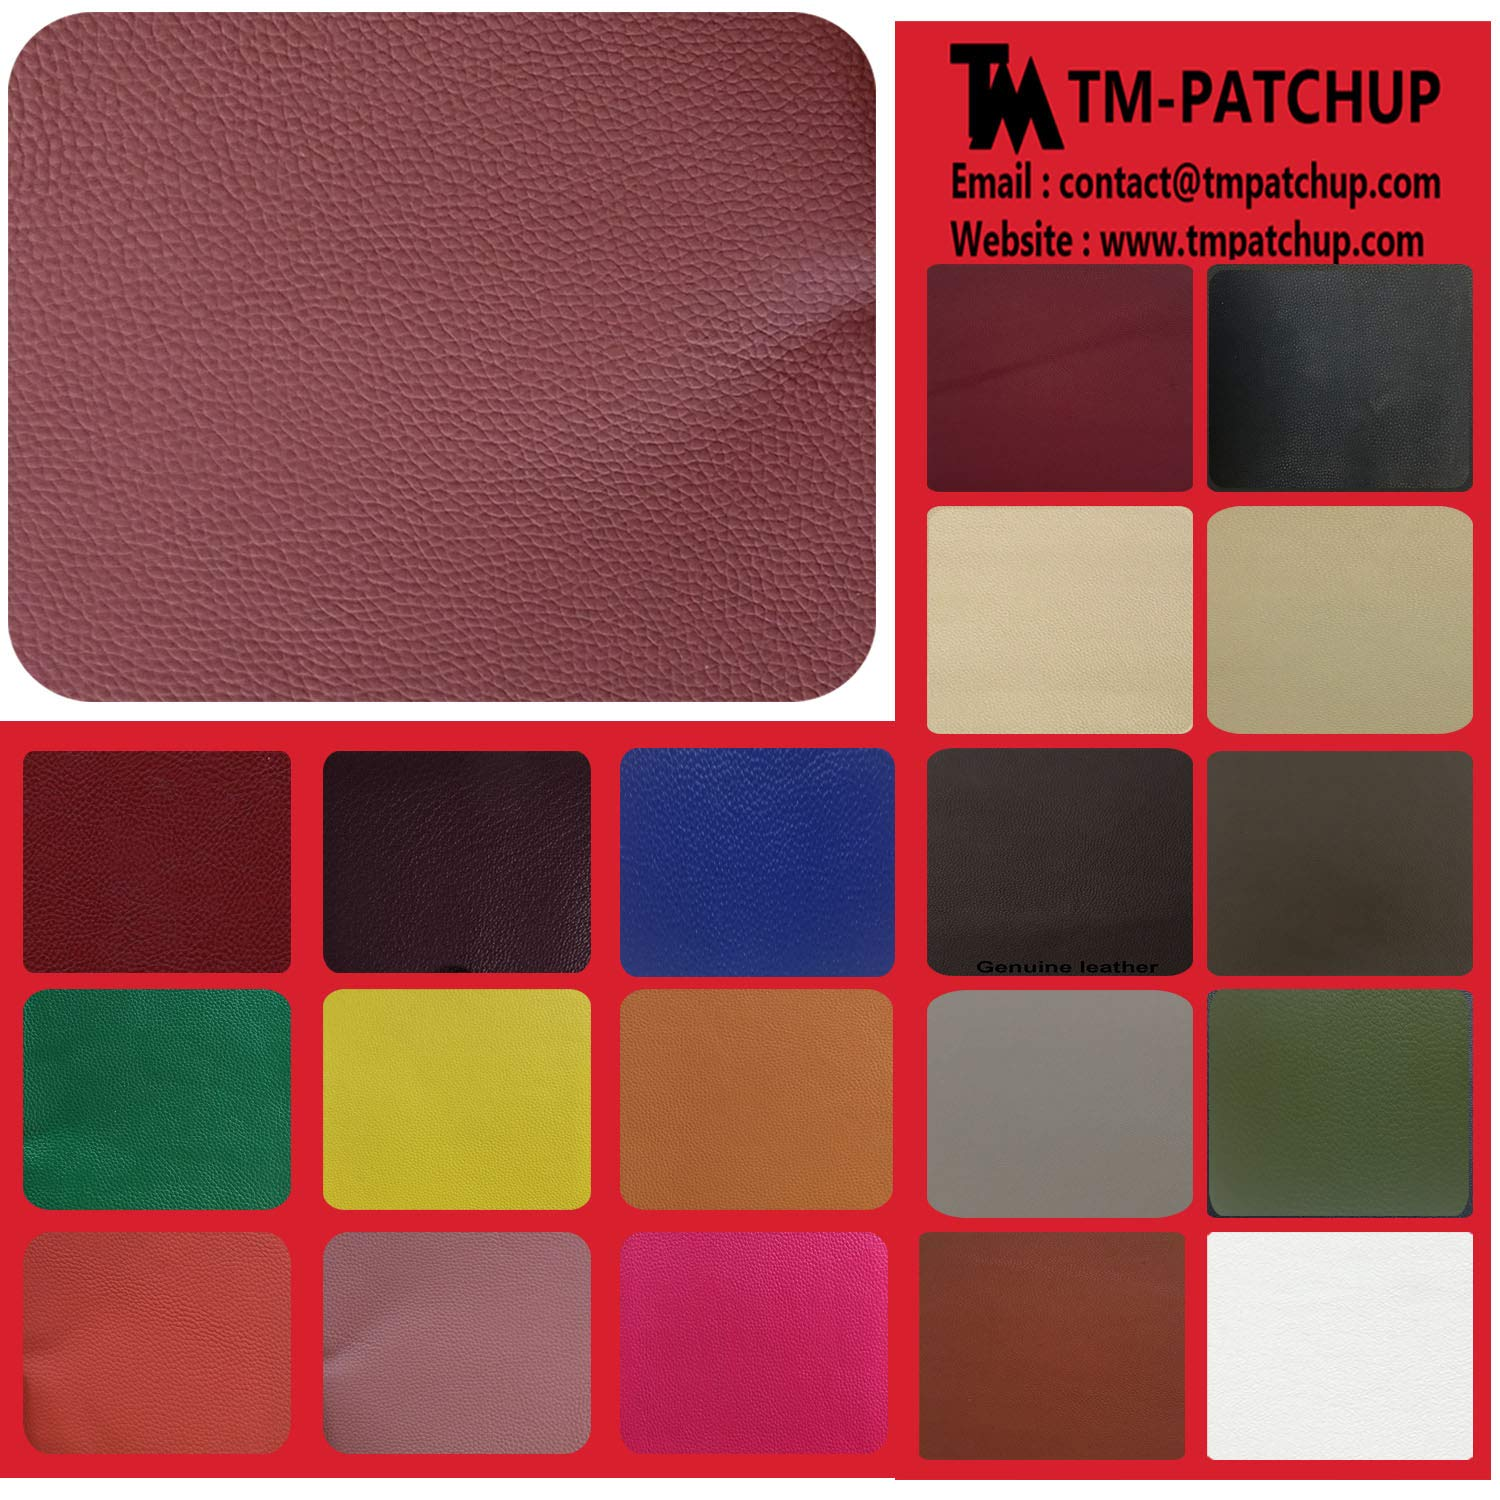 TMpatchup Genuine Leather and Vinyl Repair Patches Kit - Grain Self Adhesive Leather to Repair Furniture, Couch, Sofa, Jacket - Multiple Colors and Sizes Available (Burgundy, 4'' x 8'') 4'' x 8'') TMGroup